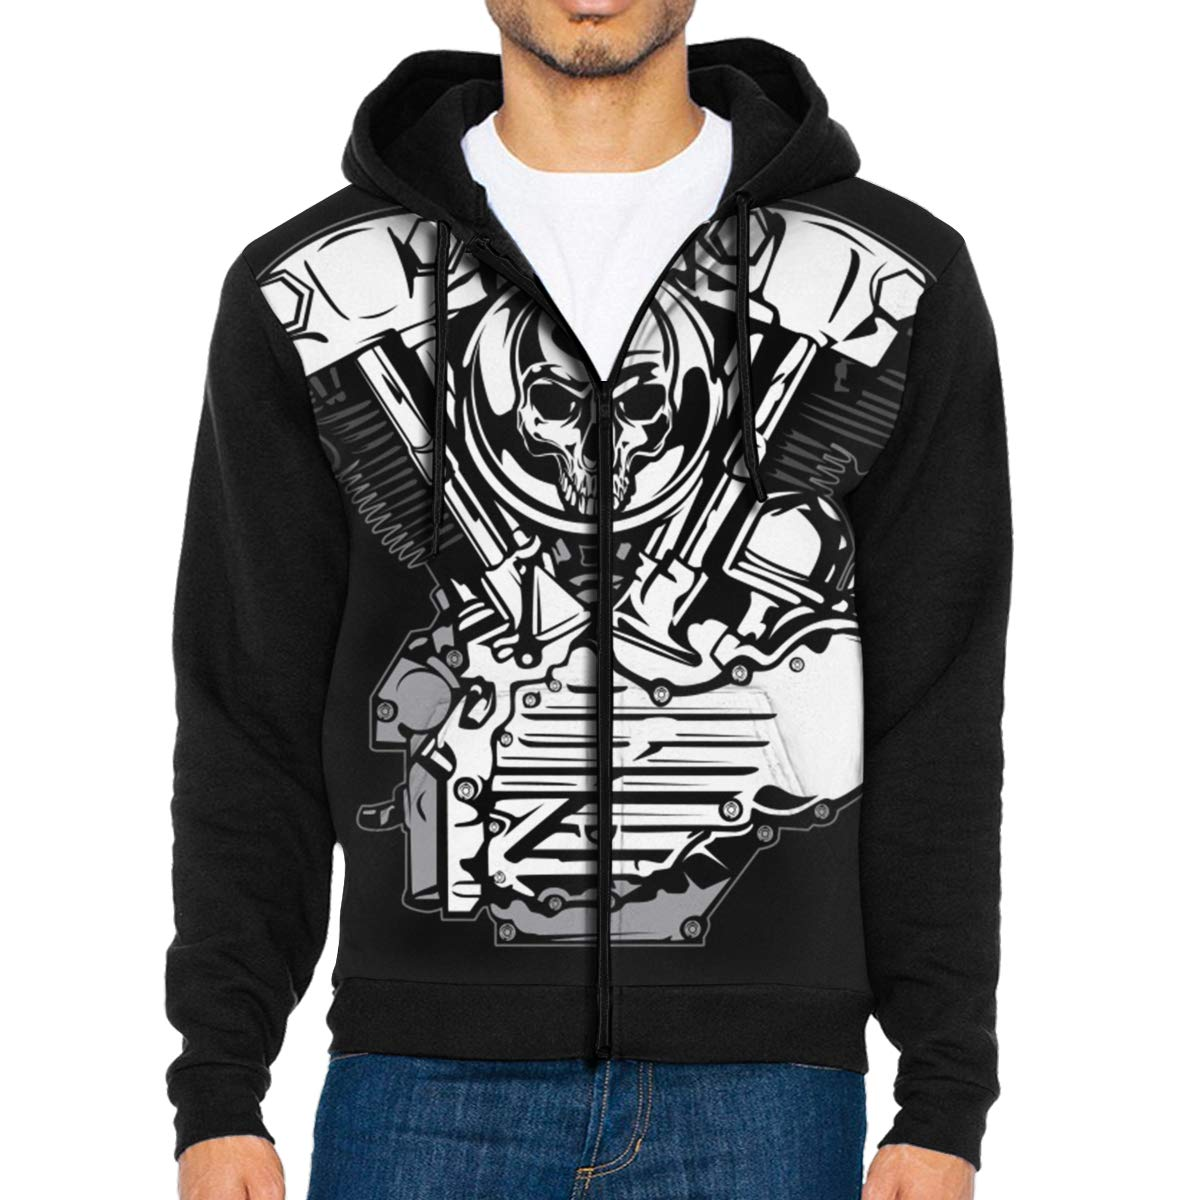 MHBGMYES Silver Motor with Skull Lightweight Mans Jacket with Hood Long Sleeved Zippered Outwear